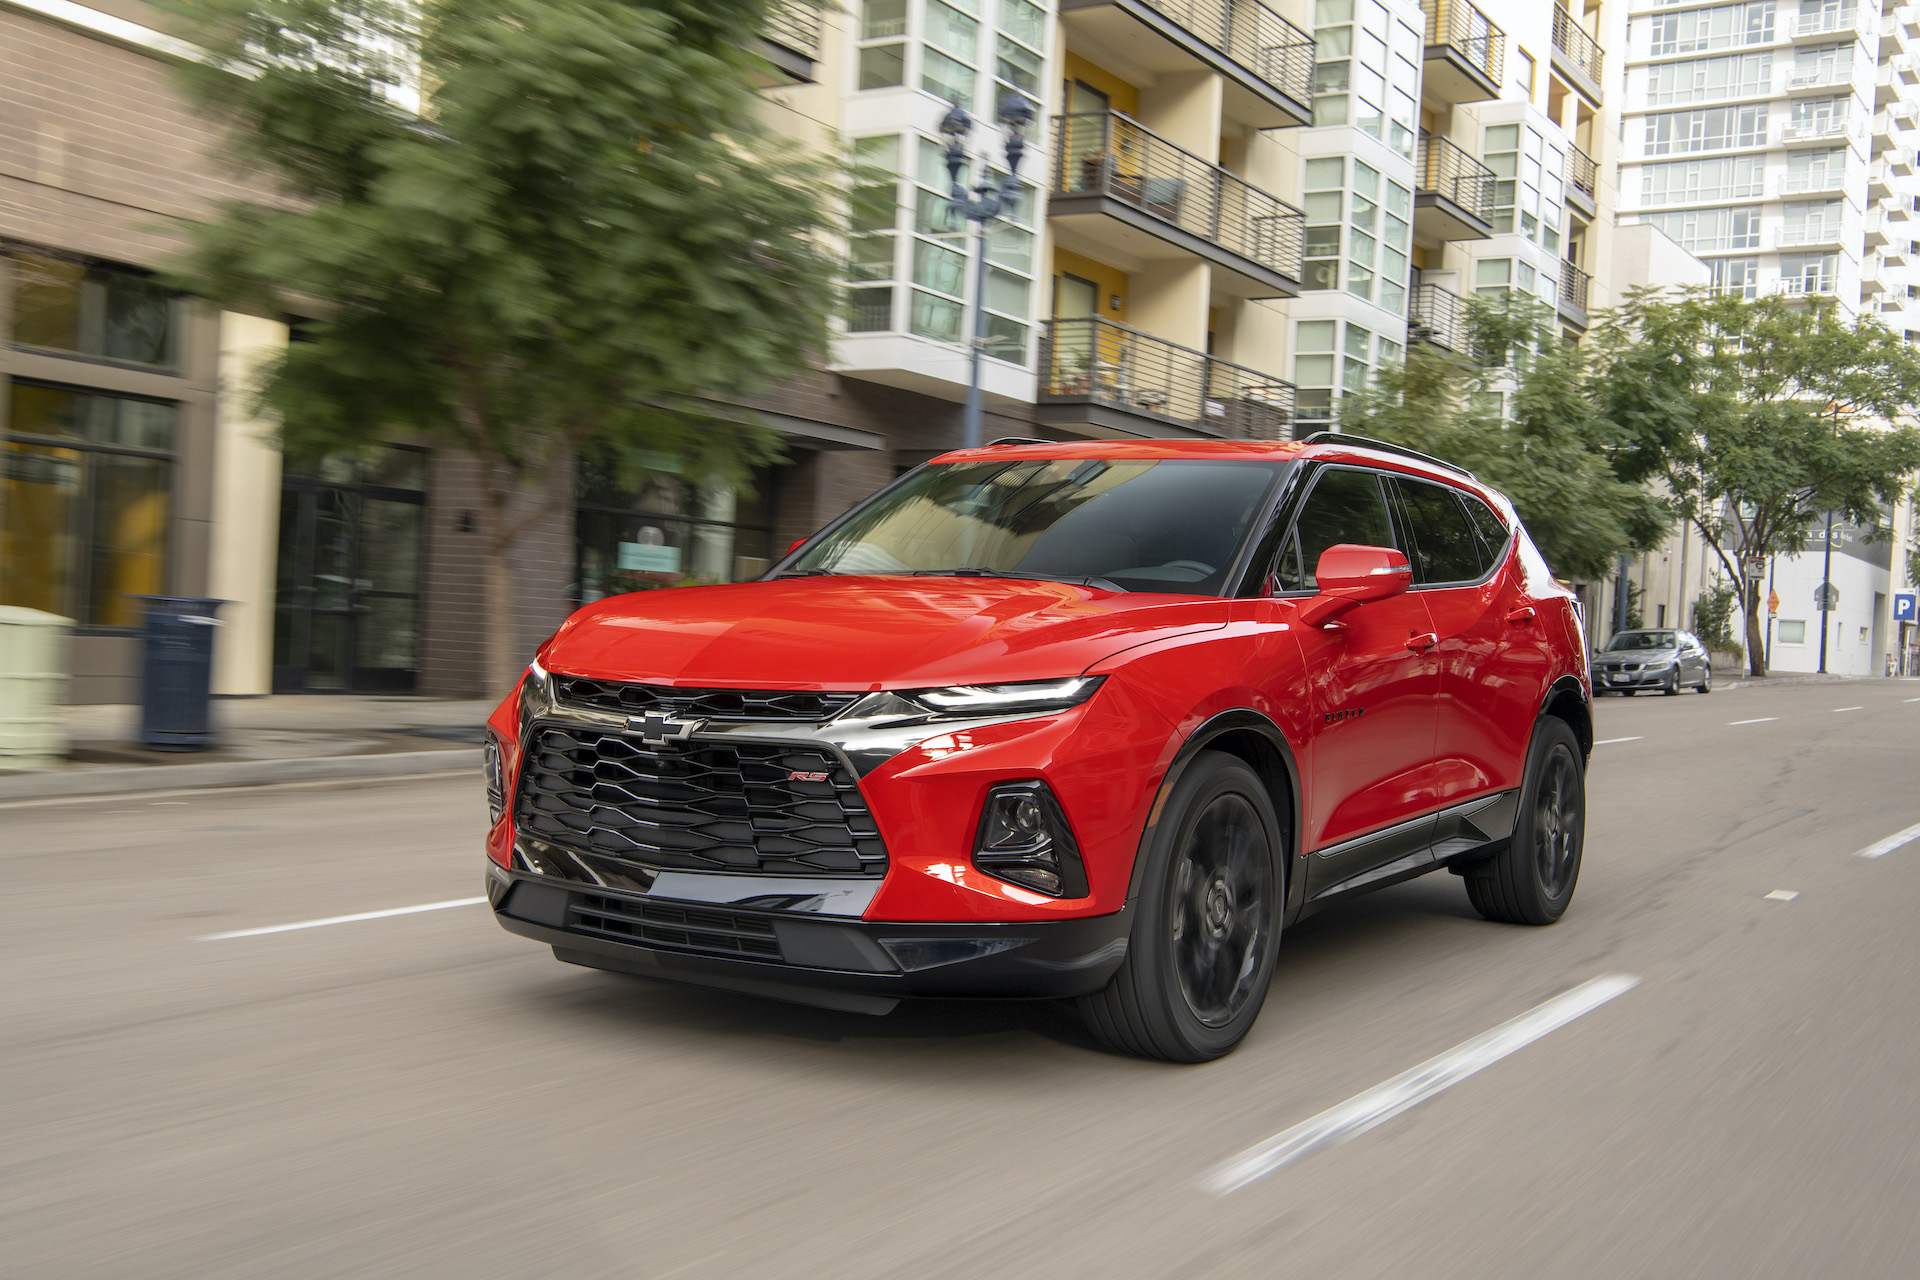 2020 Chevy Blazer Reviews